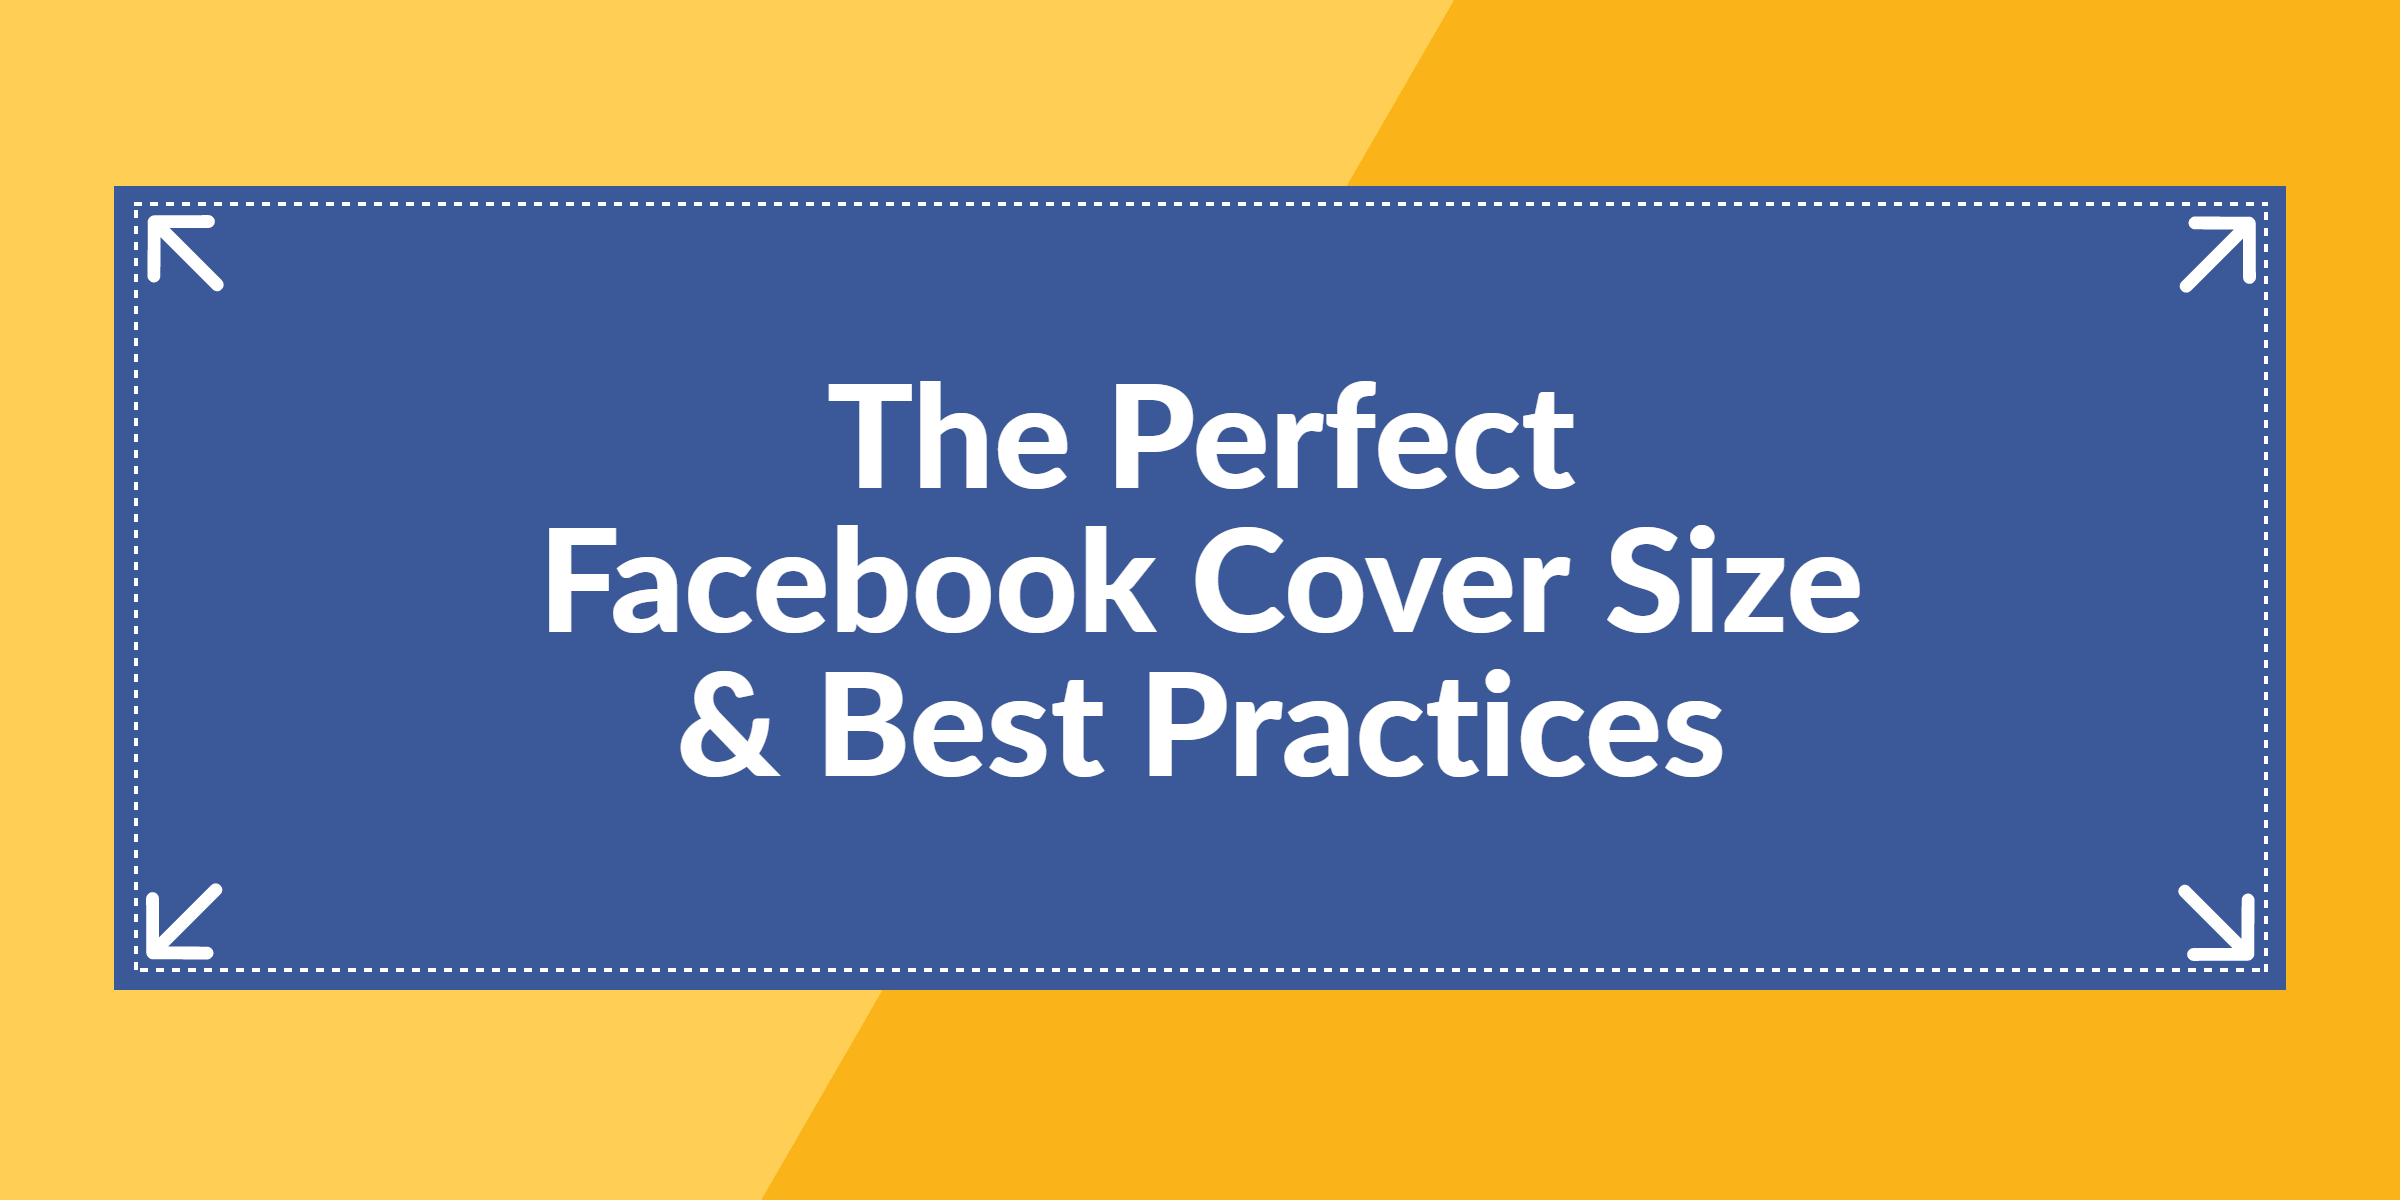 The Perfect Facebook Cover Photo Size & Best Practices (2019 Update).